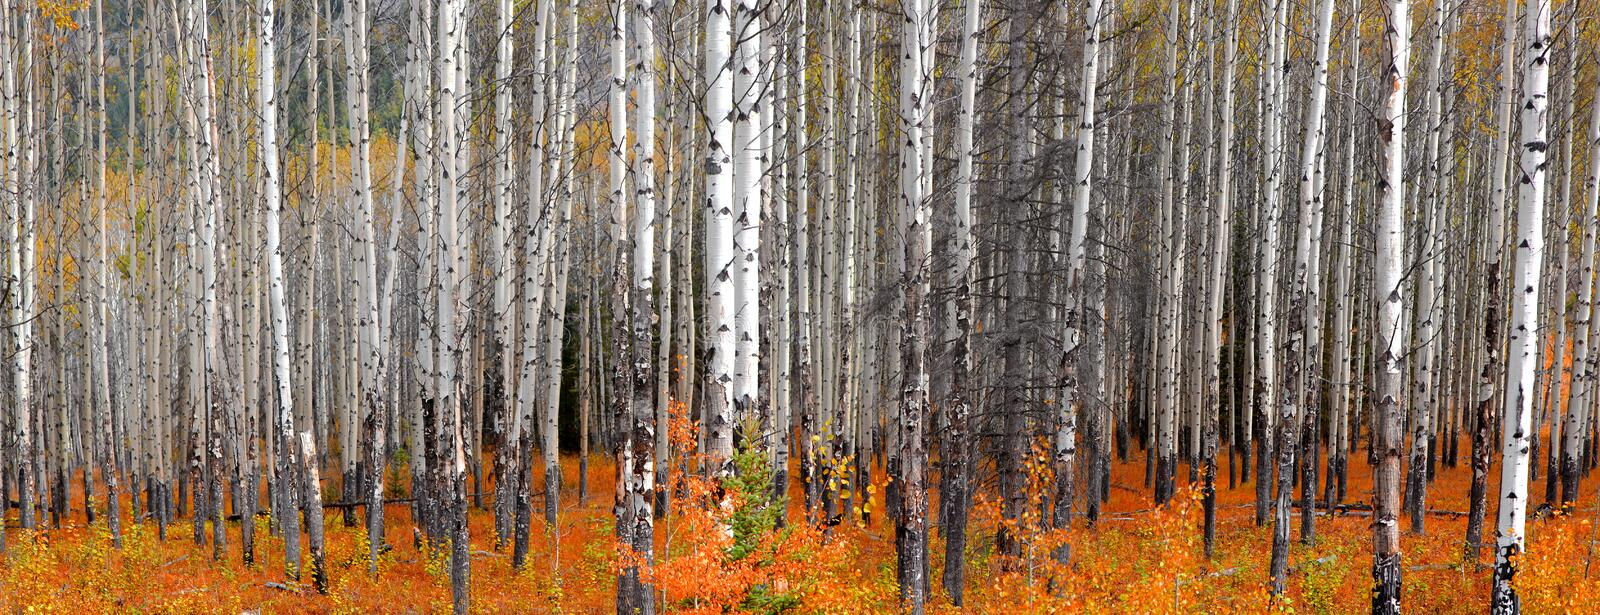 Panoramic view of Aspen trees in autumn time stock photos